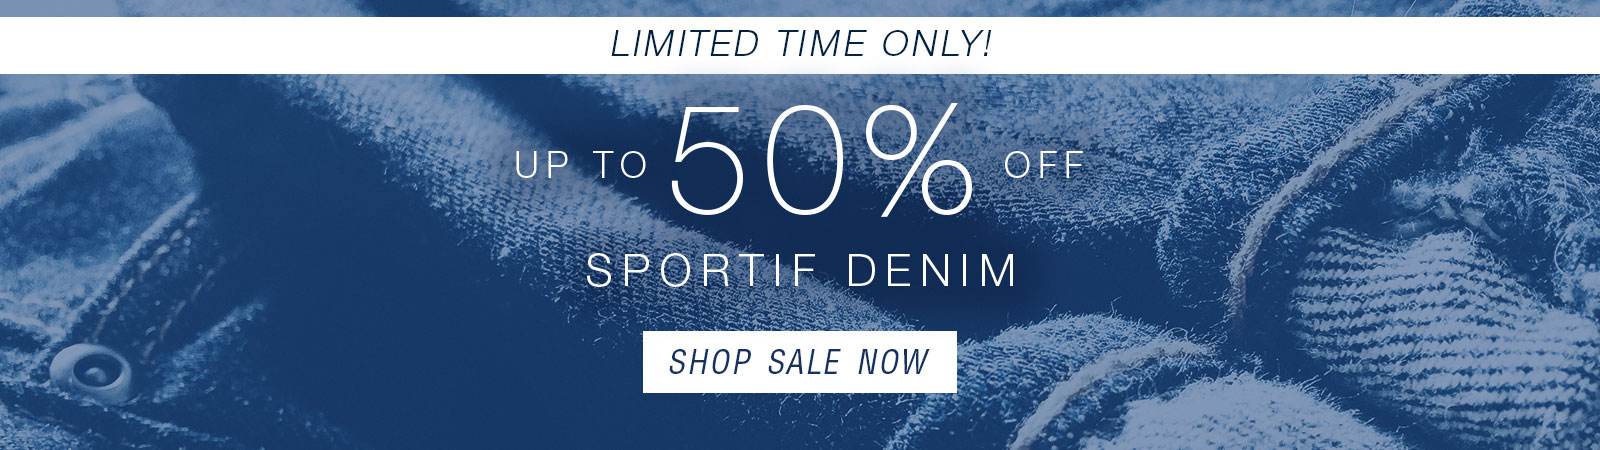 Shop up to 50% Off Sportif Denim